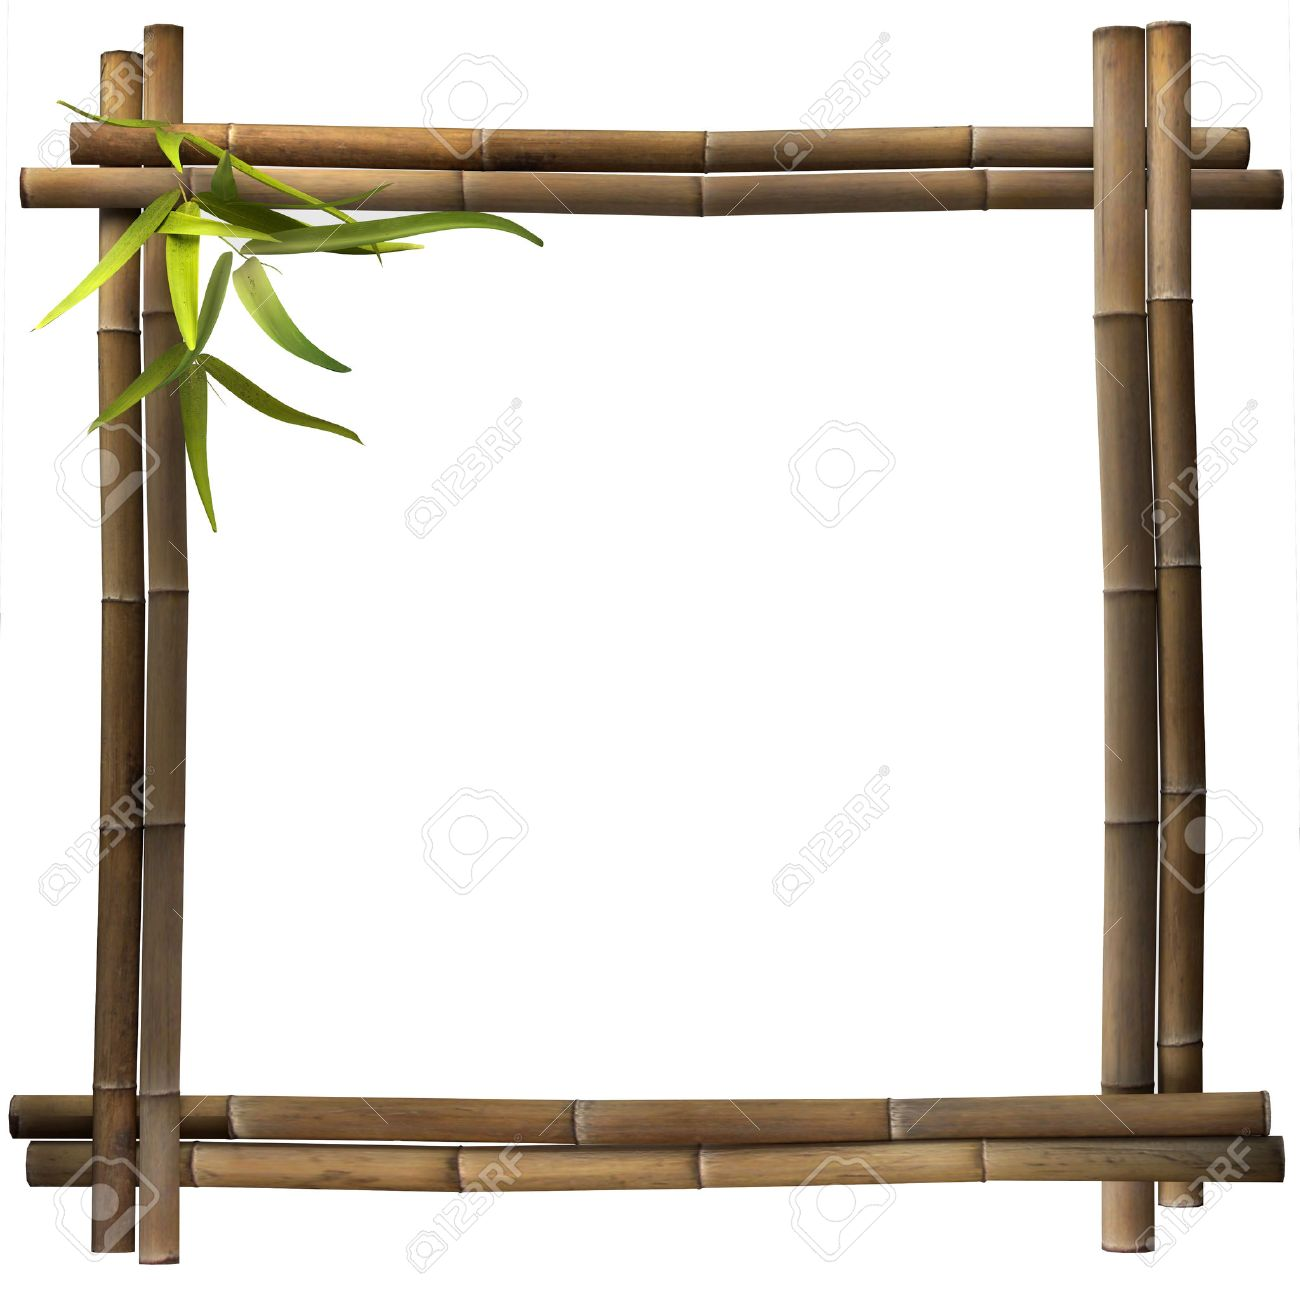 Bamboo Frame Brown Square Stock Photo, Picture And Royalty Free ...